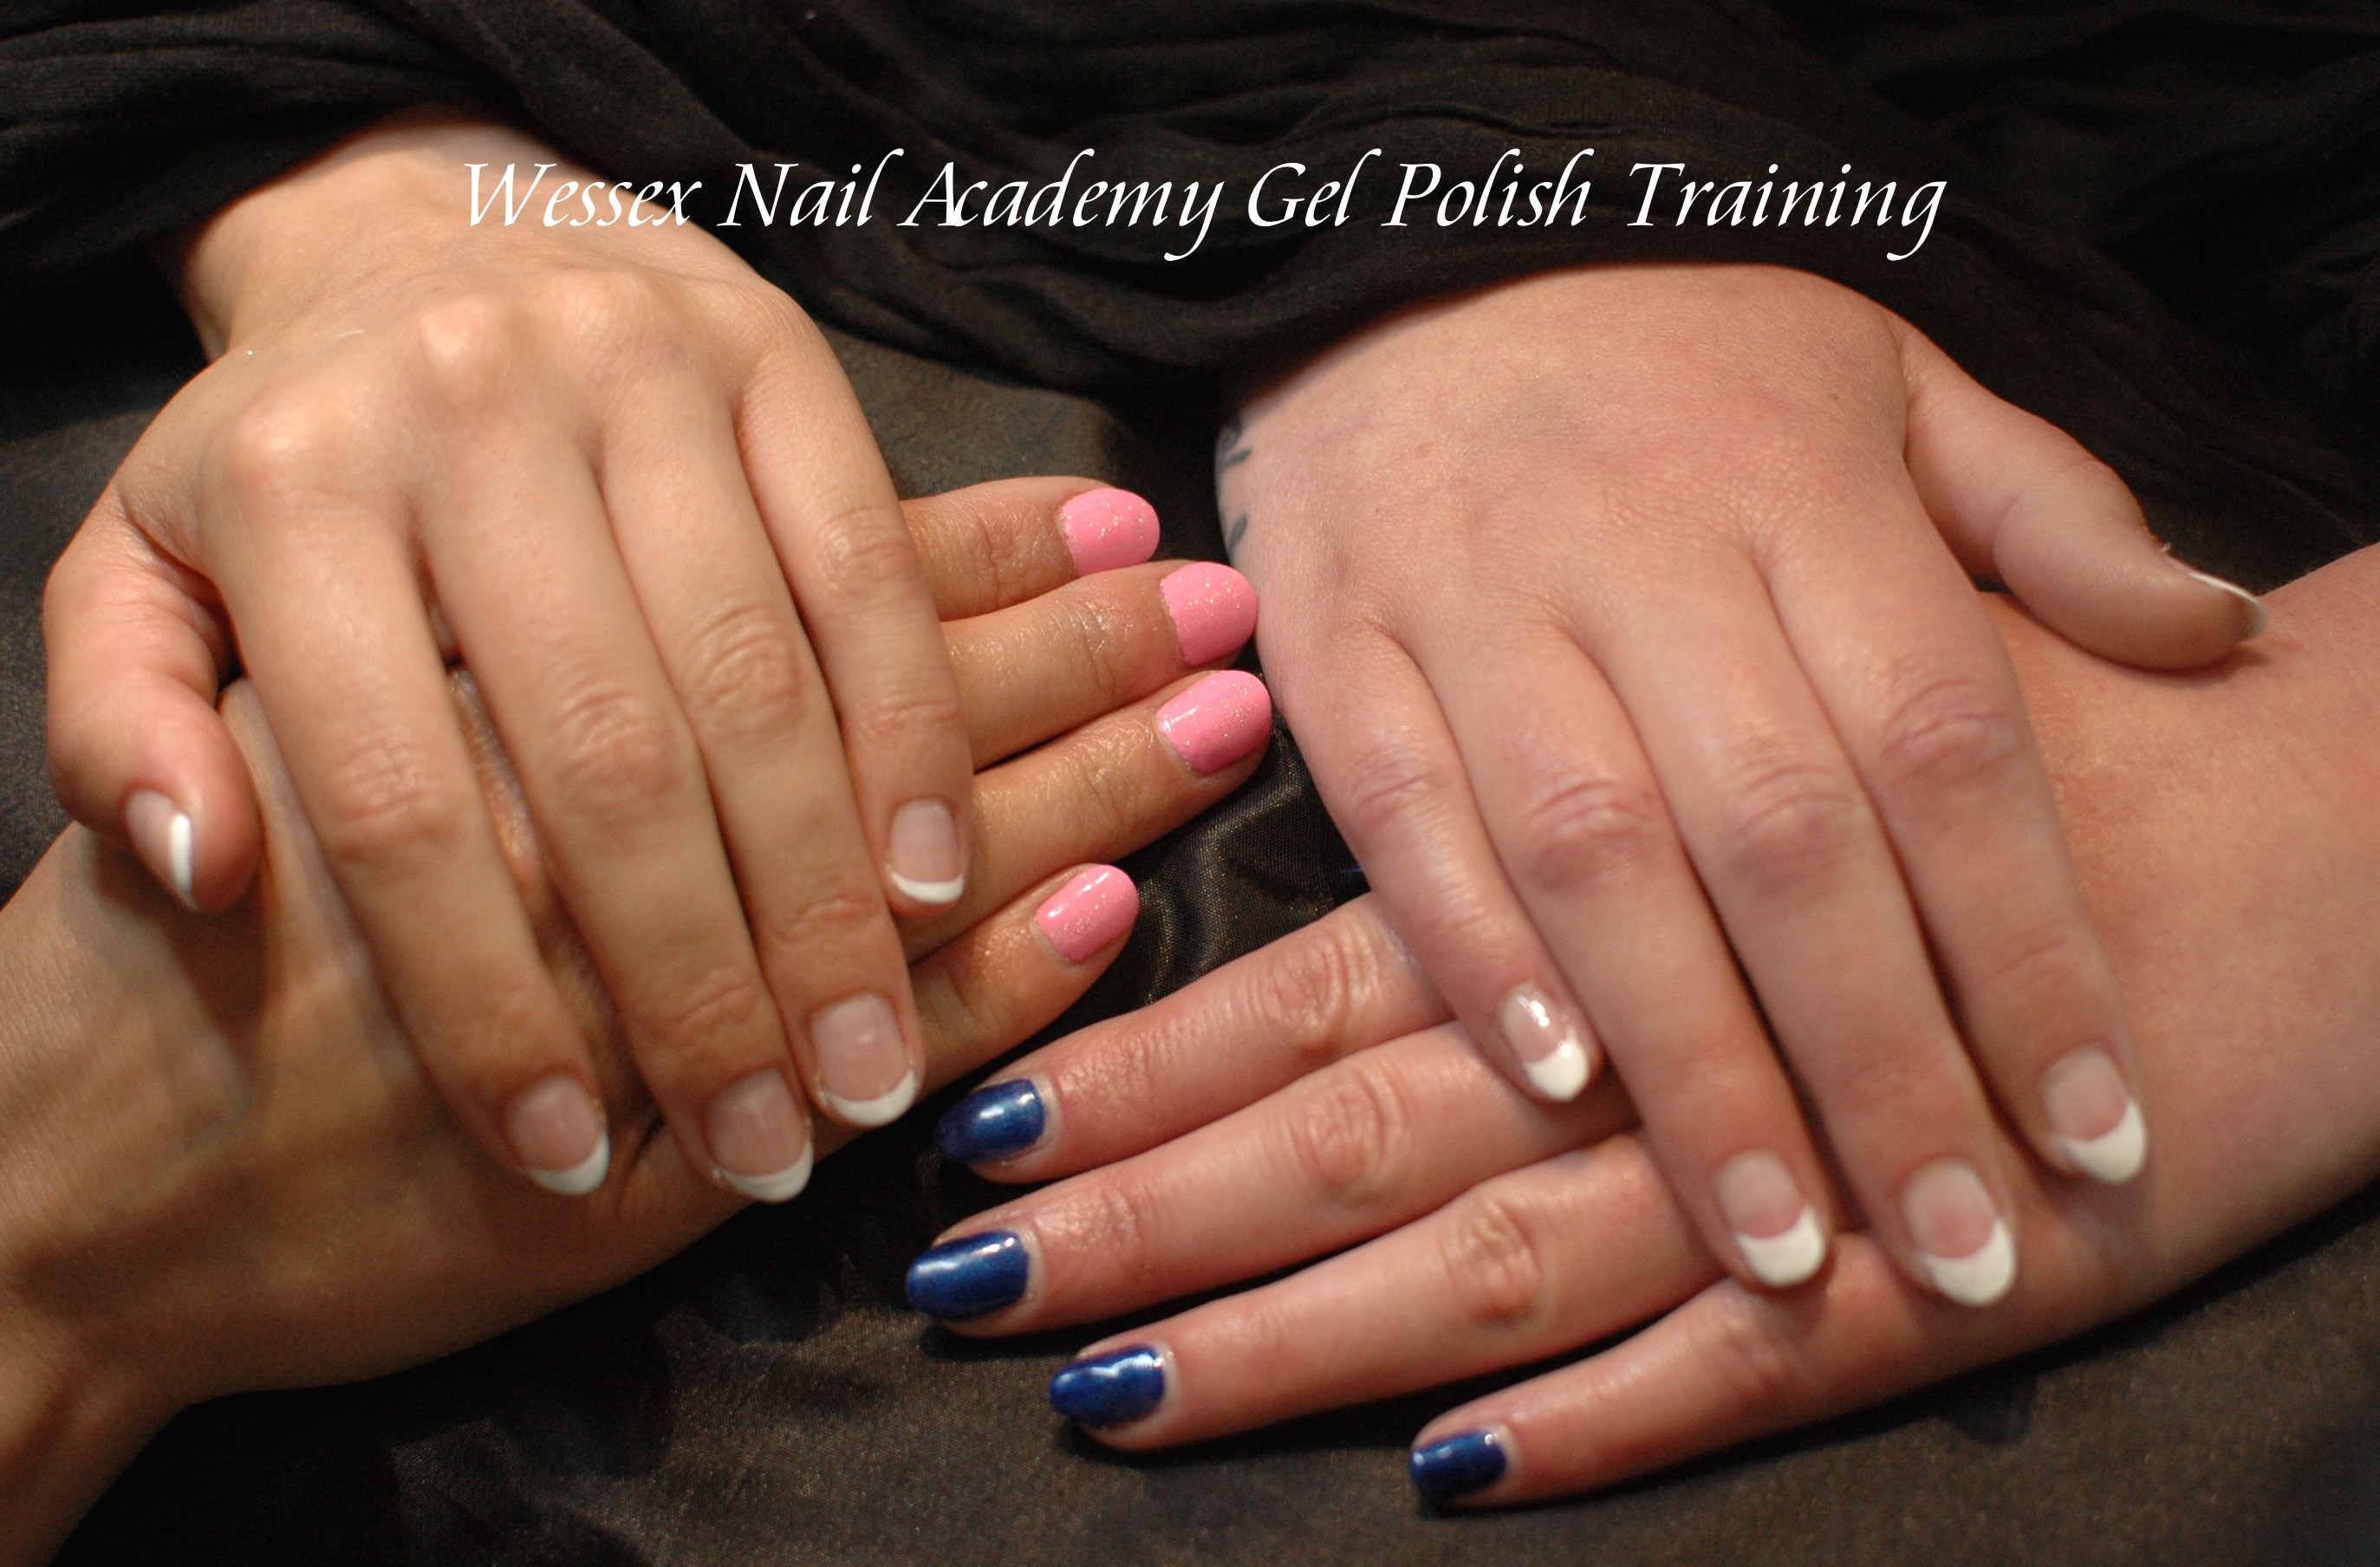 Gel Polish Beginners Manicure Nail Training Course Work, Nail extension training , nail training course, Wessex Nail Academy Okeford Fitzpaine, Dorset